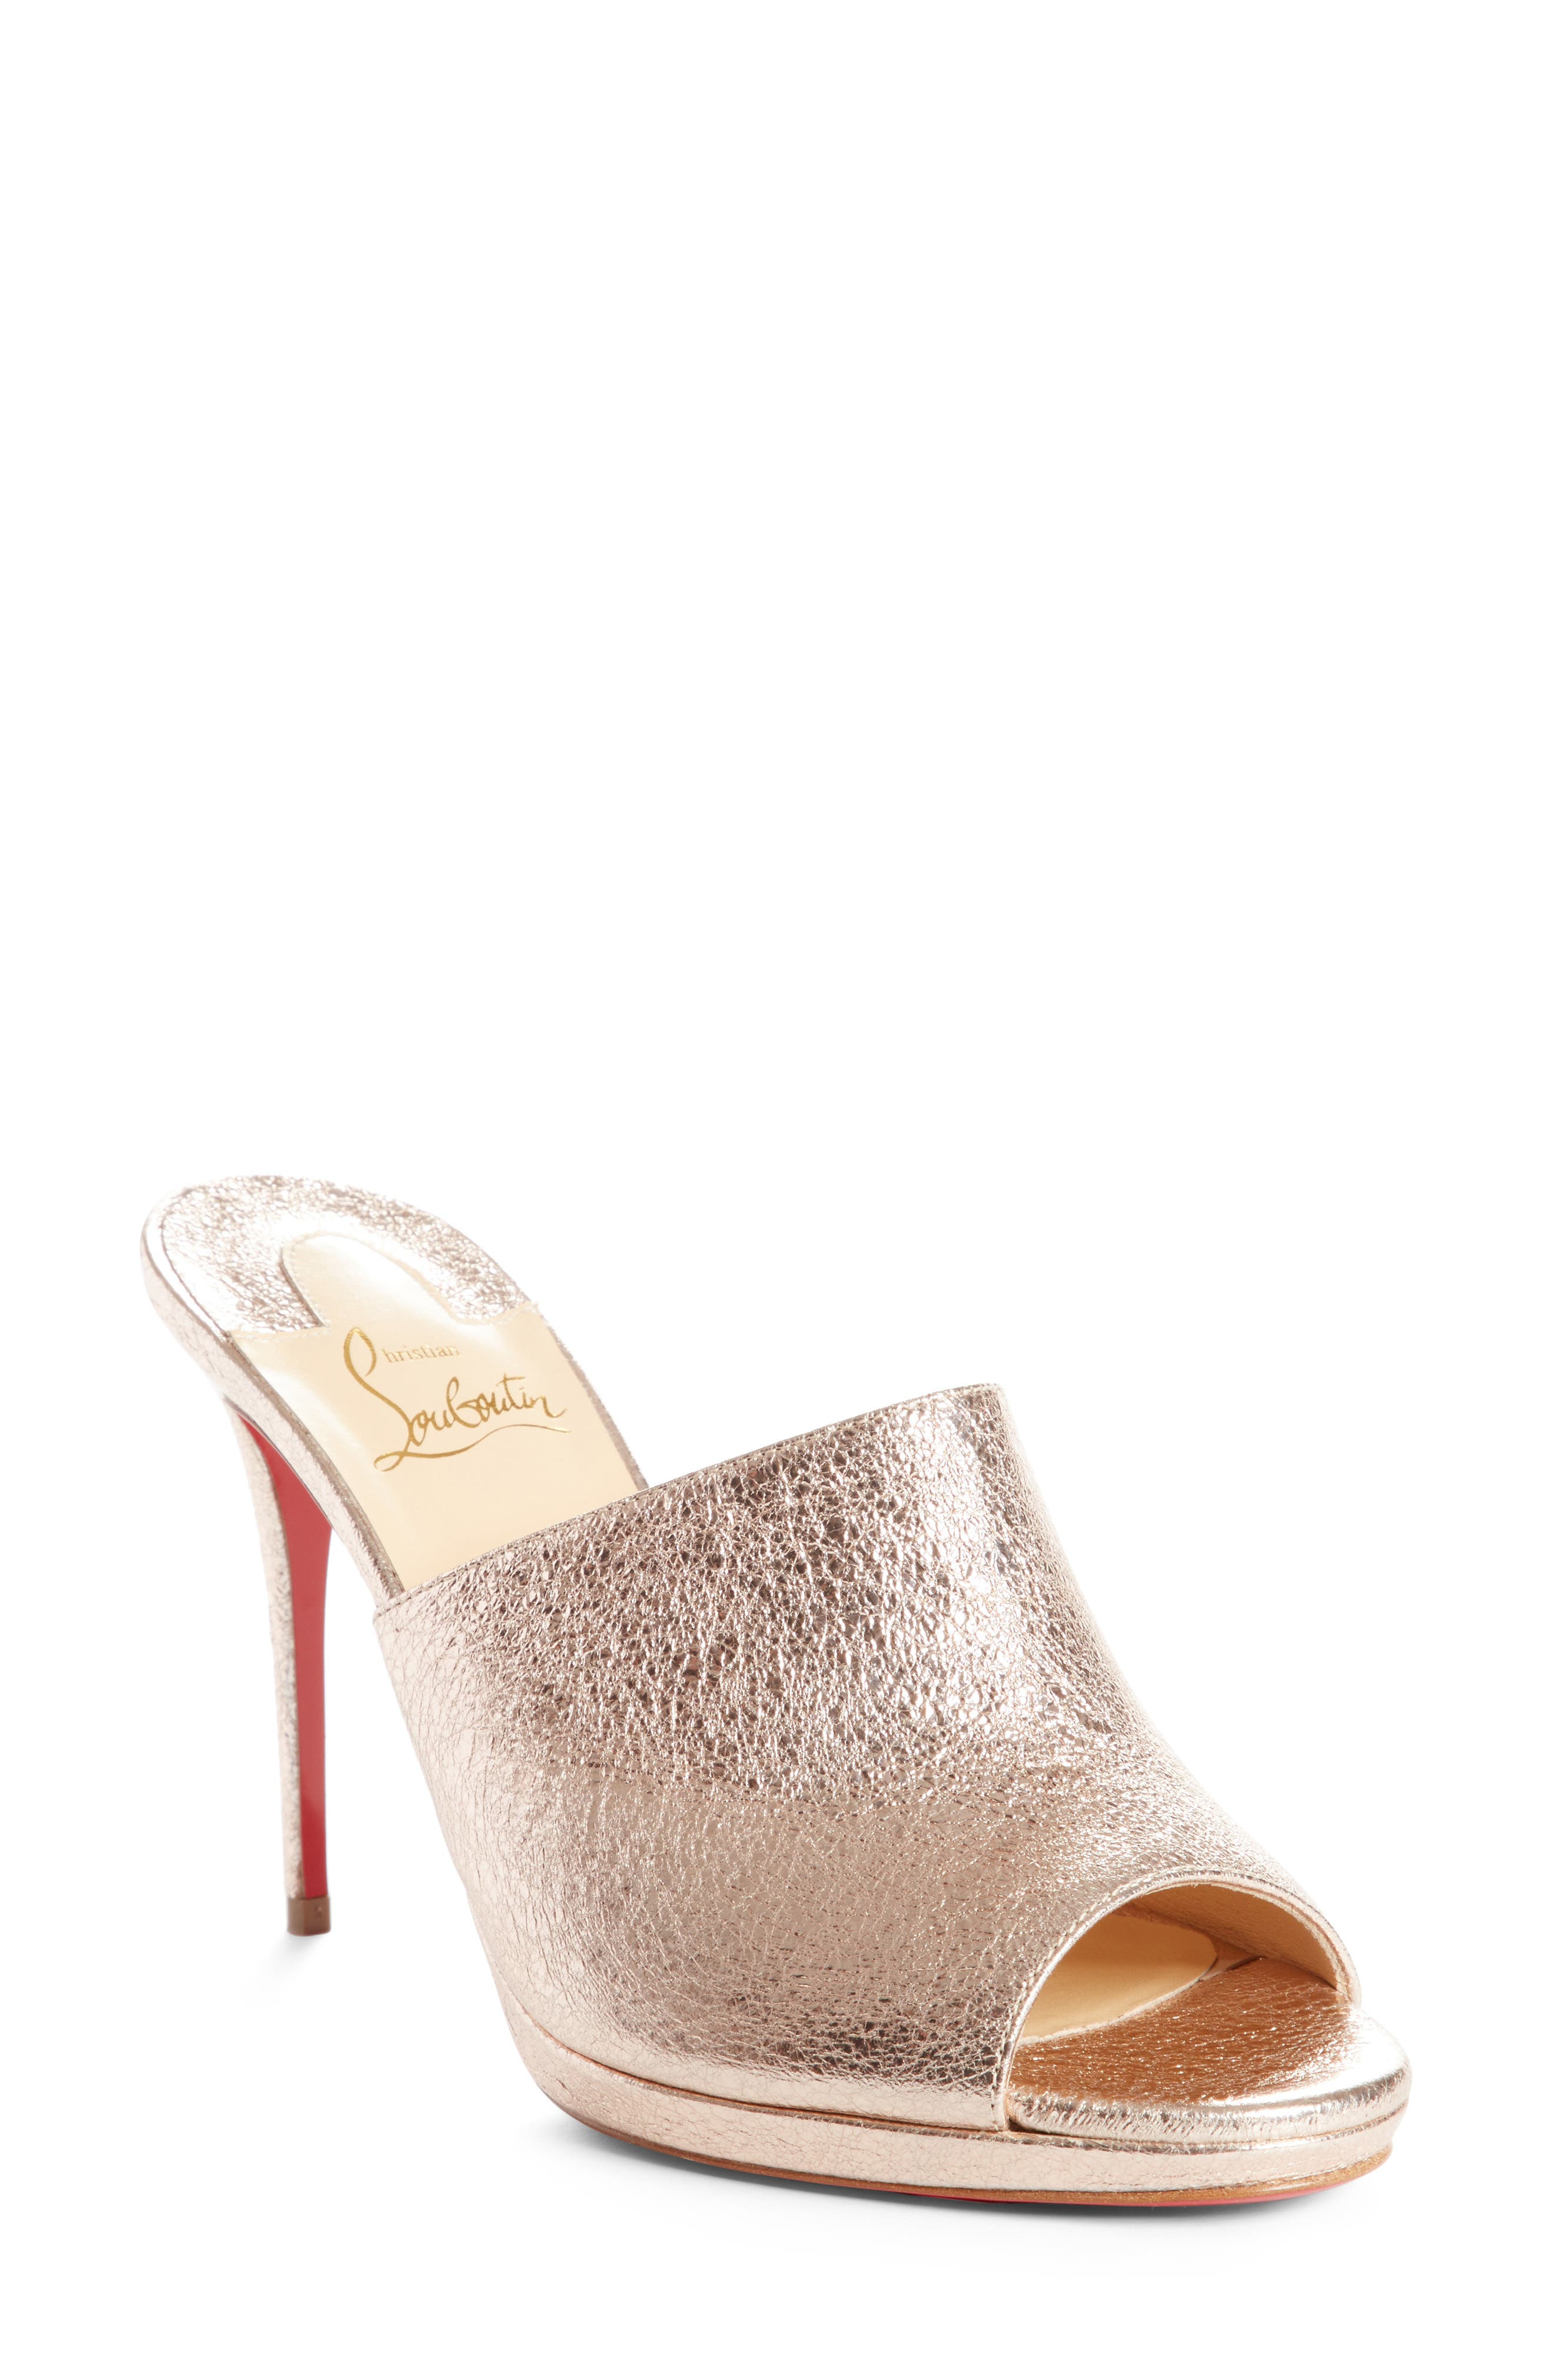 Metallic Pigalle Mule,                             Main thumbnail 1, color,                             Rose Gold